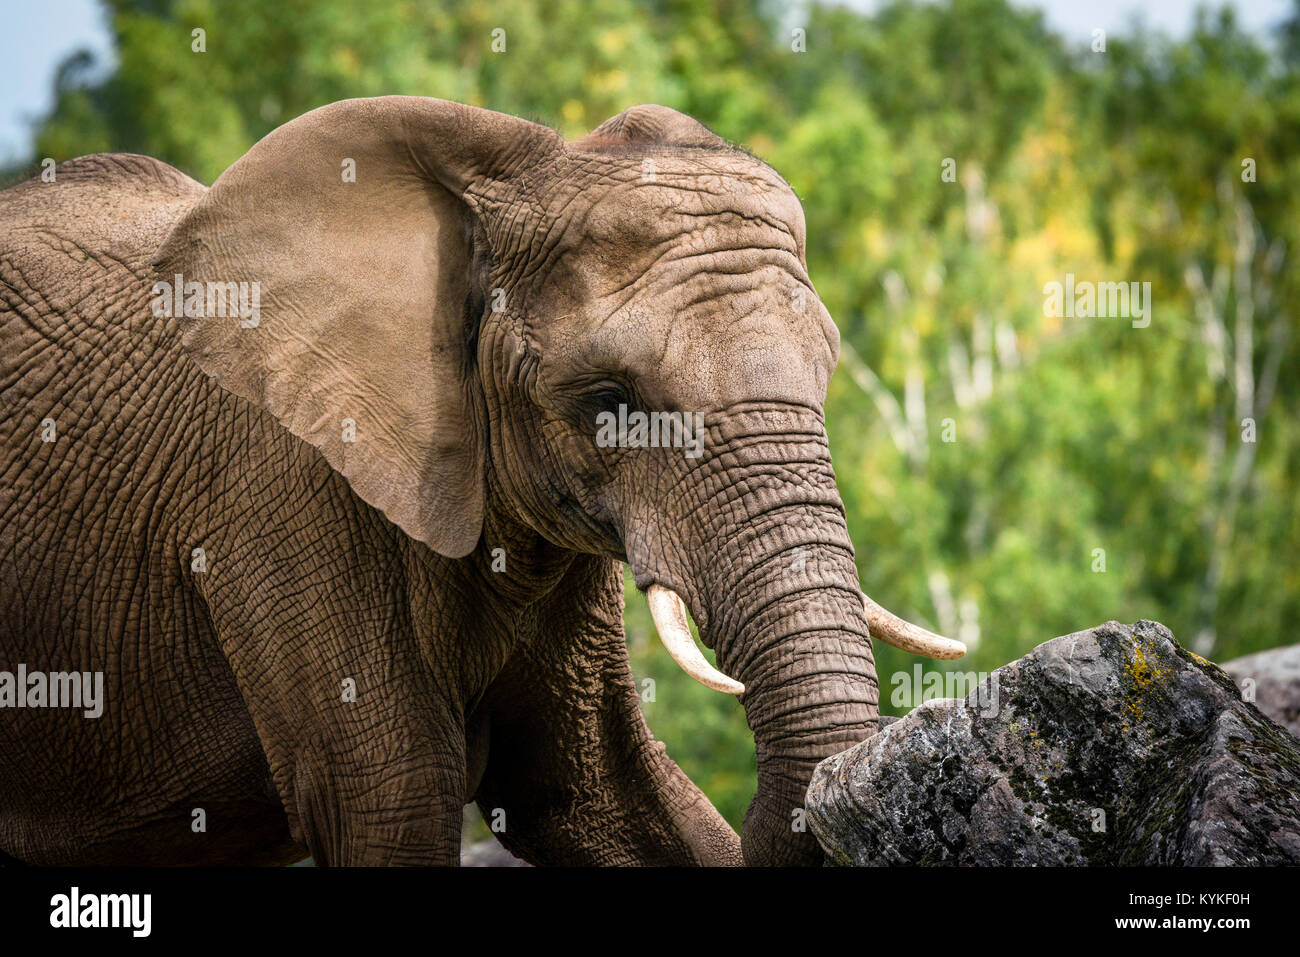 Elephant playing with a rock trying to lift it with the trunk - Stock Image